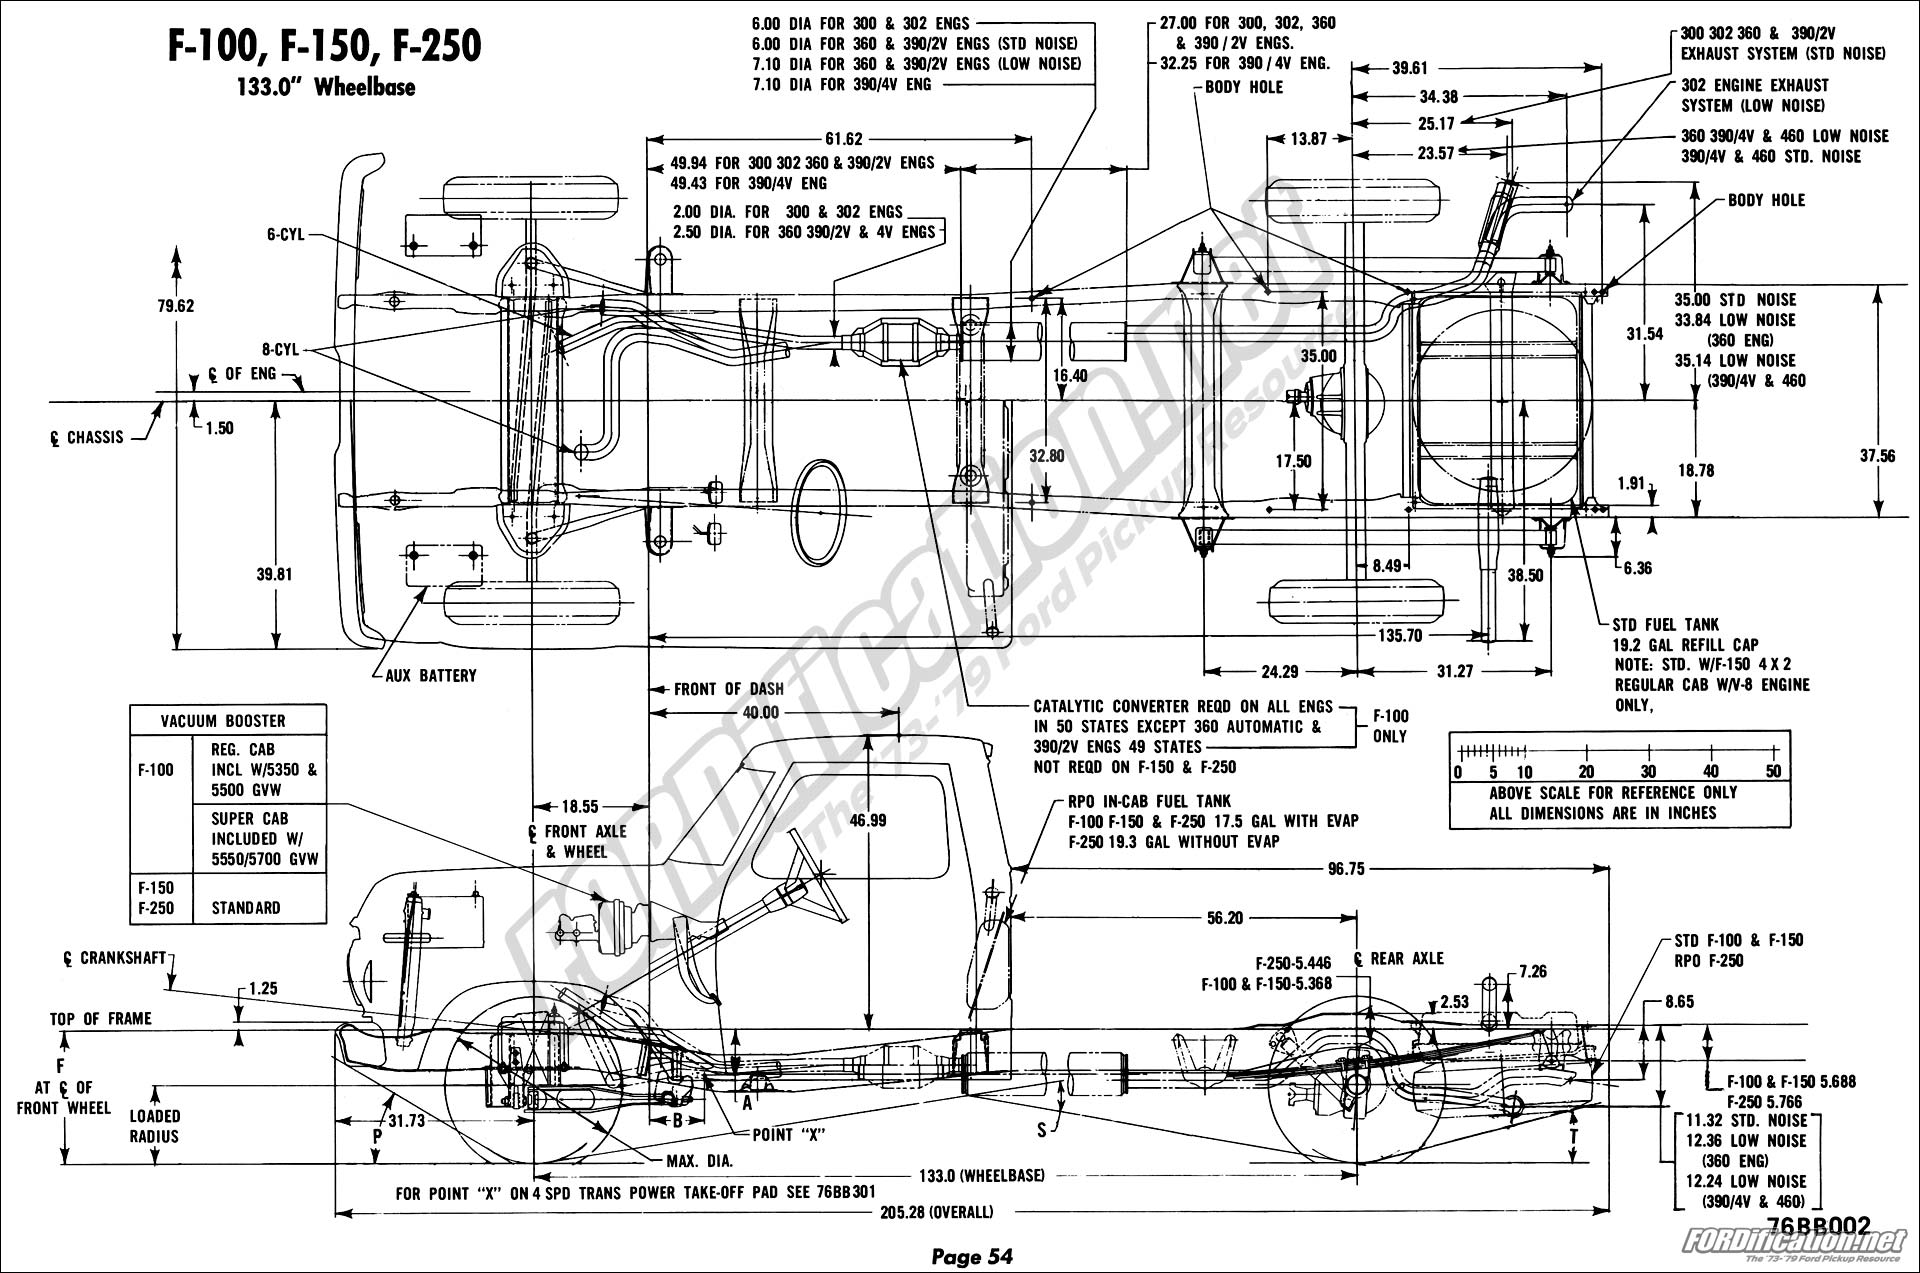 1970 Ford Mustang 302 Vacuum Diagram, 1970, Free Engine